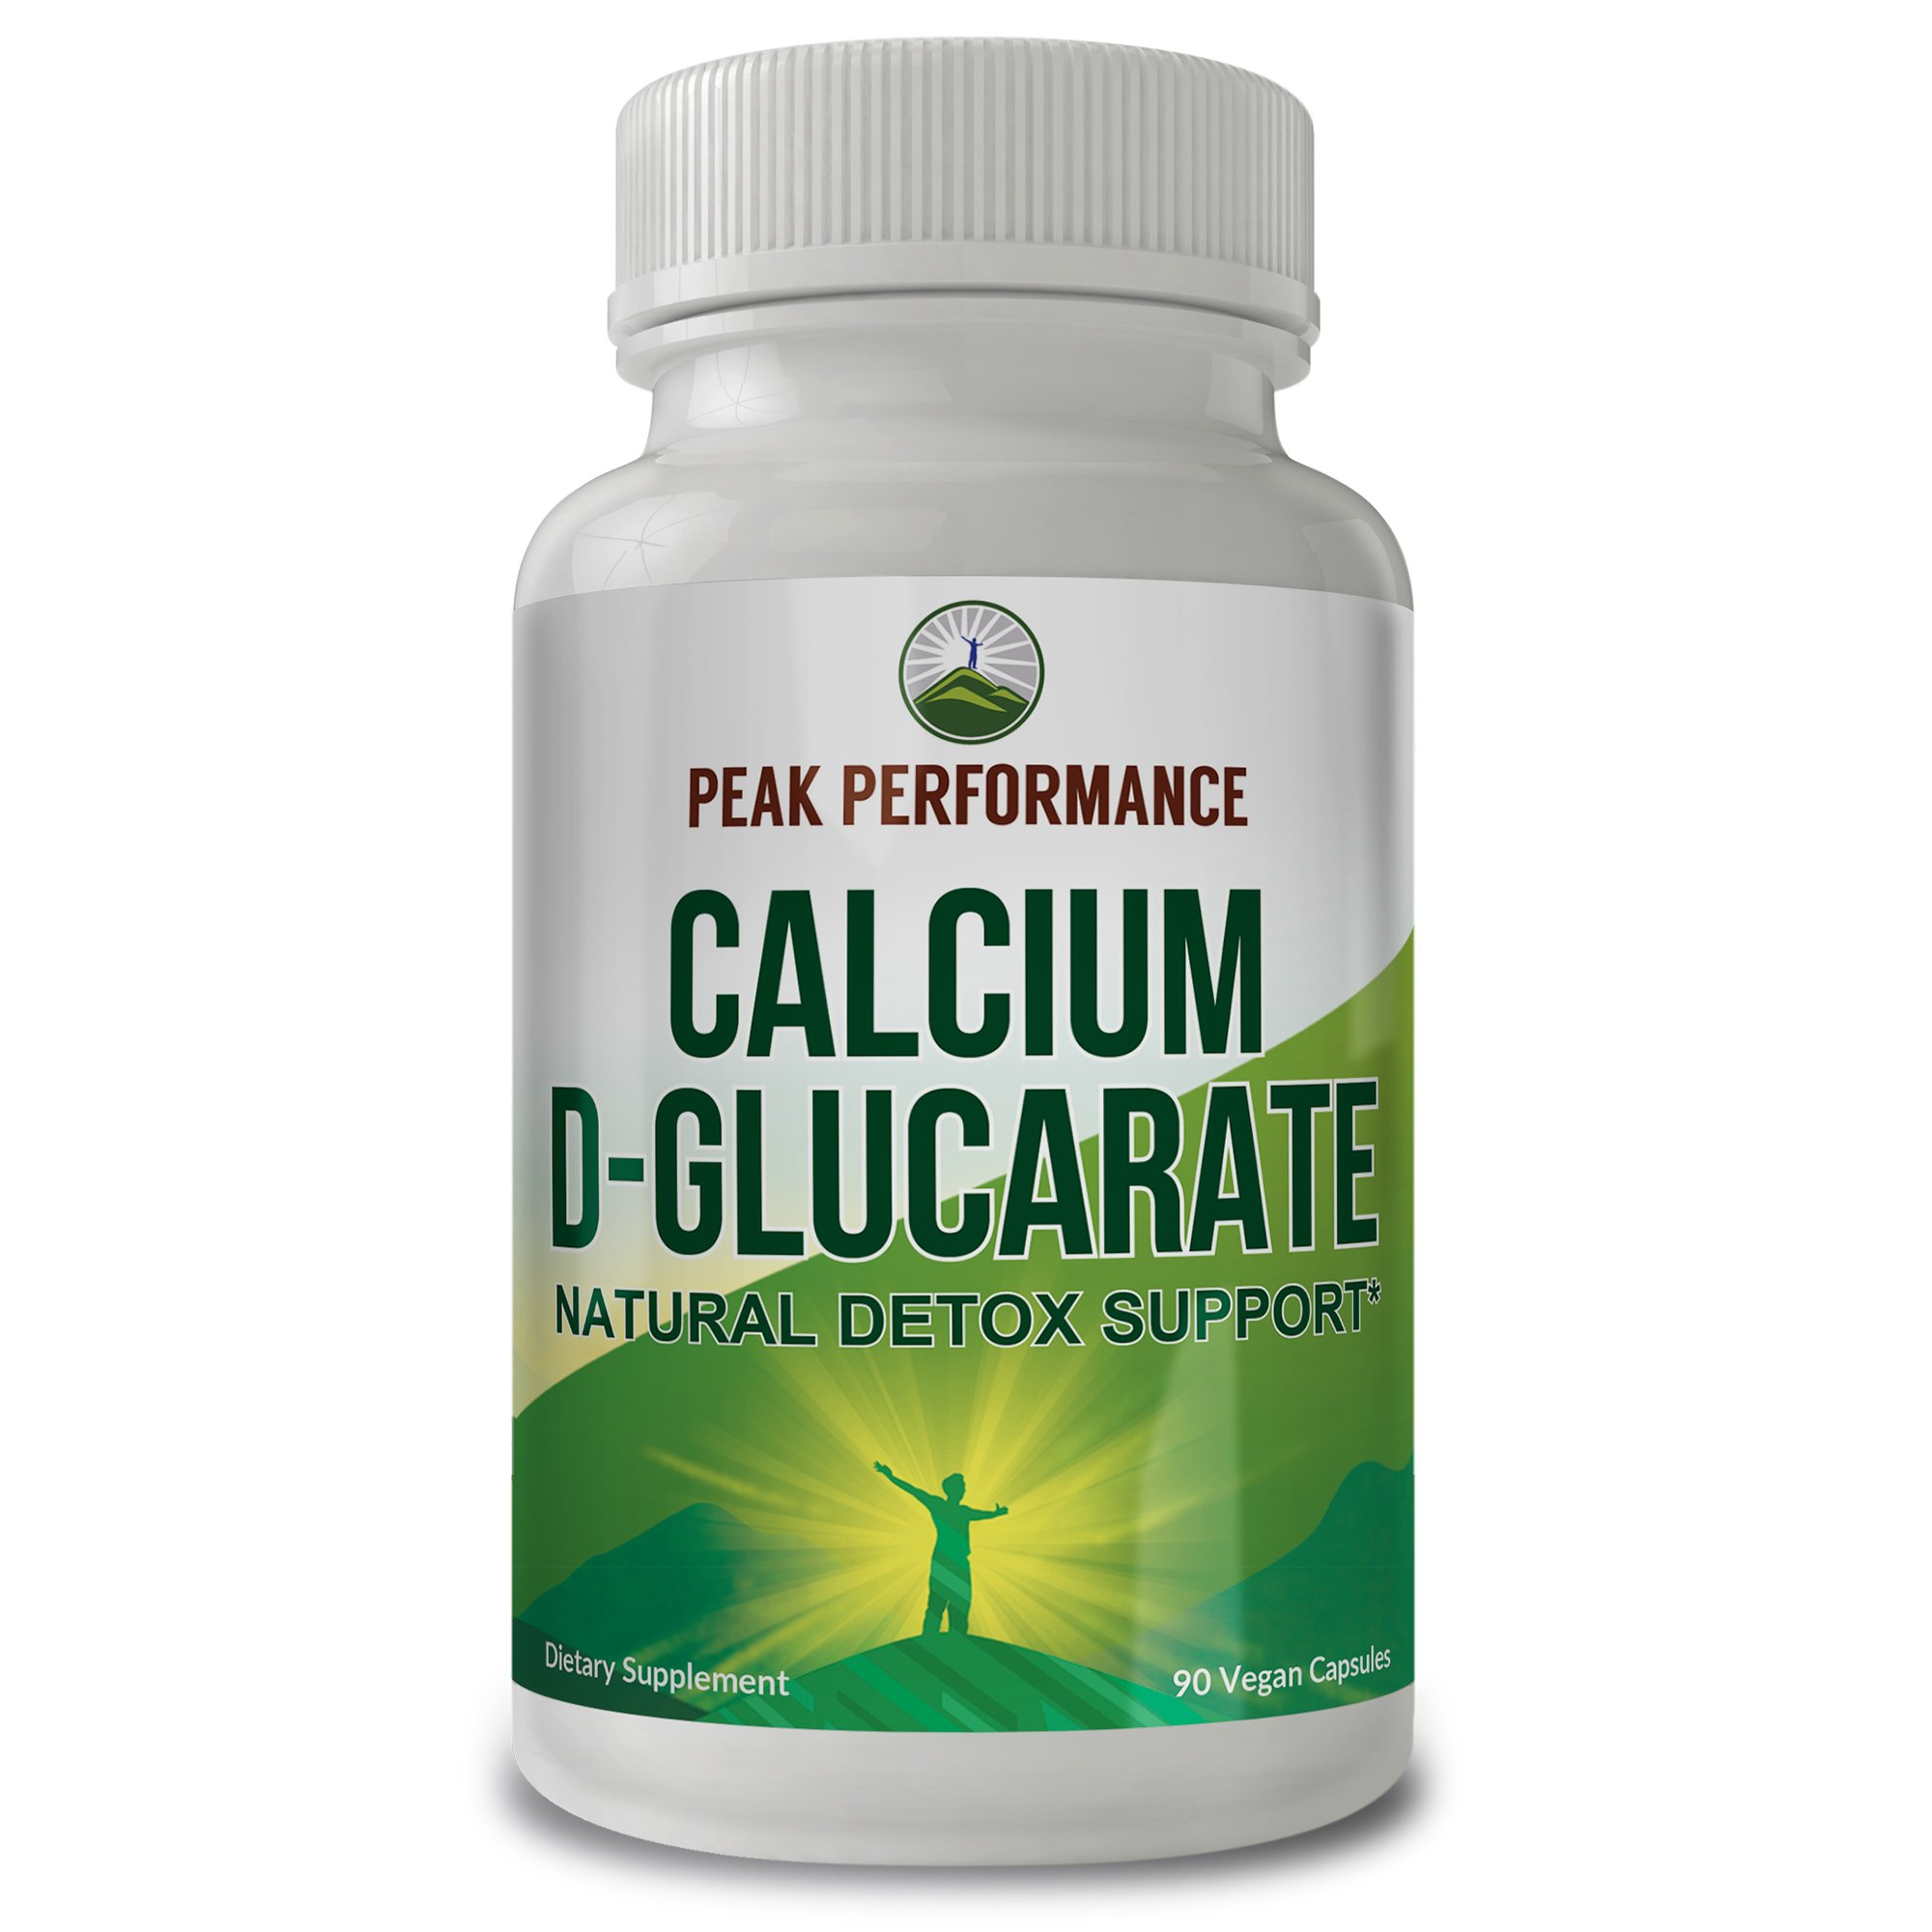 Calcium D-Glucarate Natural Detox Support By Peak Performance. Eliminates Metabolic Waste and Lowers Bad Cholesterol. Support For Improved Metabolism + Promotes Liver, Prostate (1 pack)